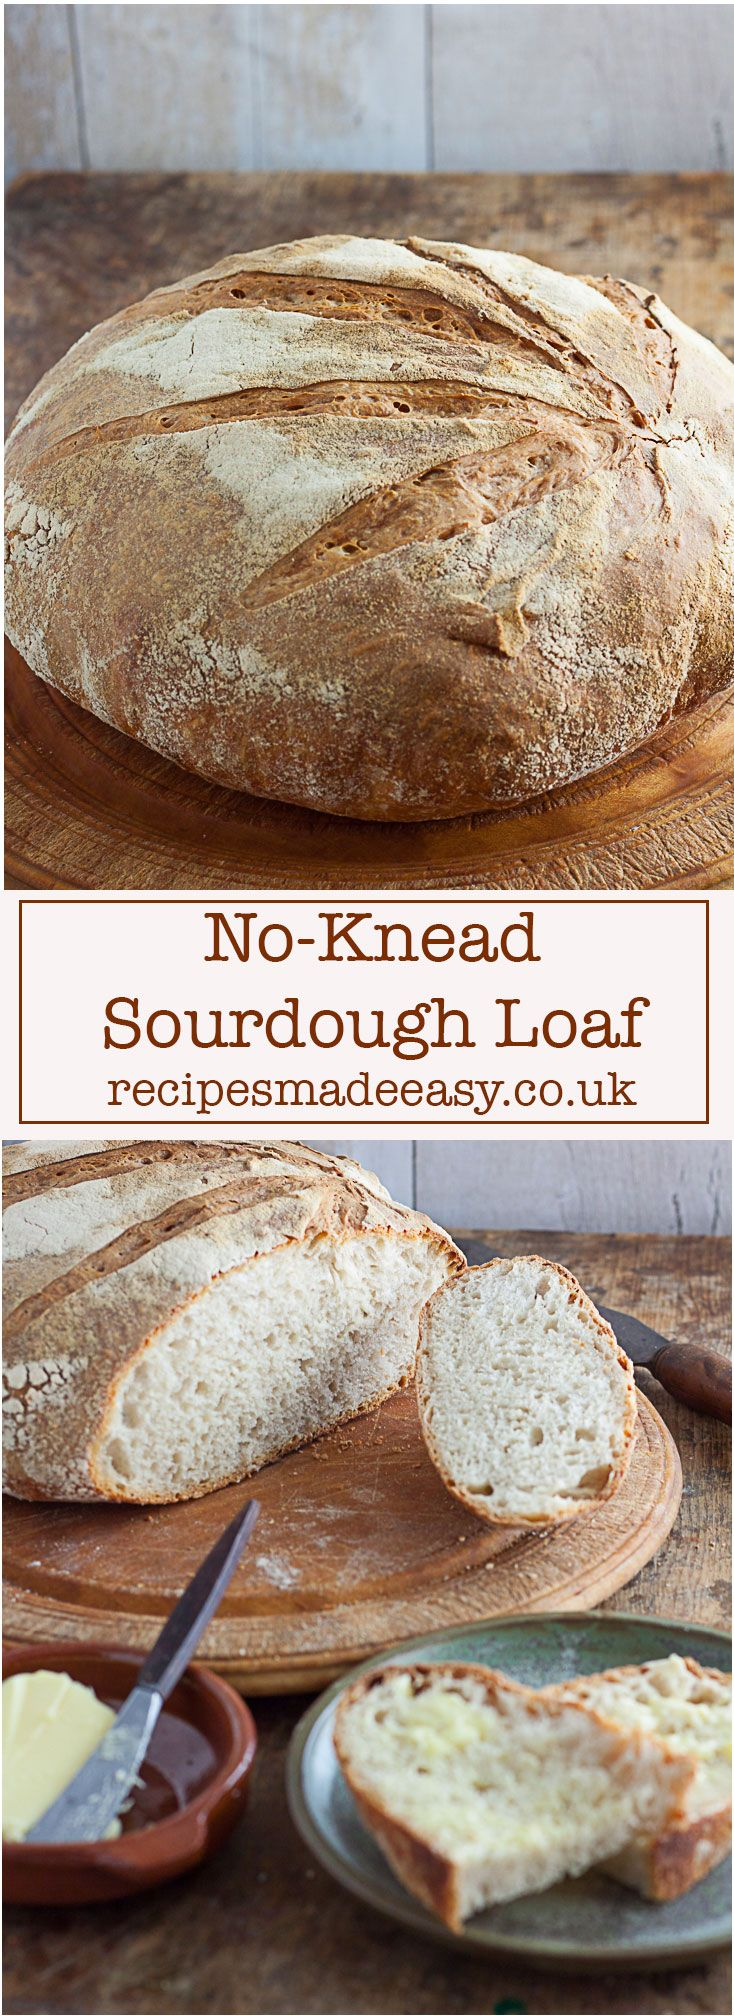 Making sourdough bread at home is now within easy to reach with this easy to follow step by step method for no knead sourdough bread. via @jacdotbee